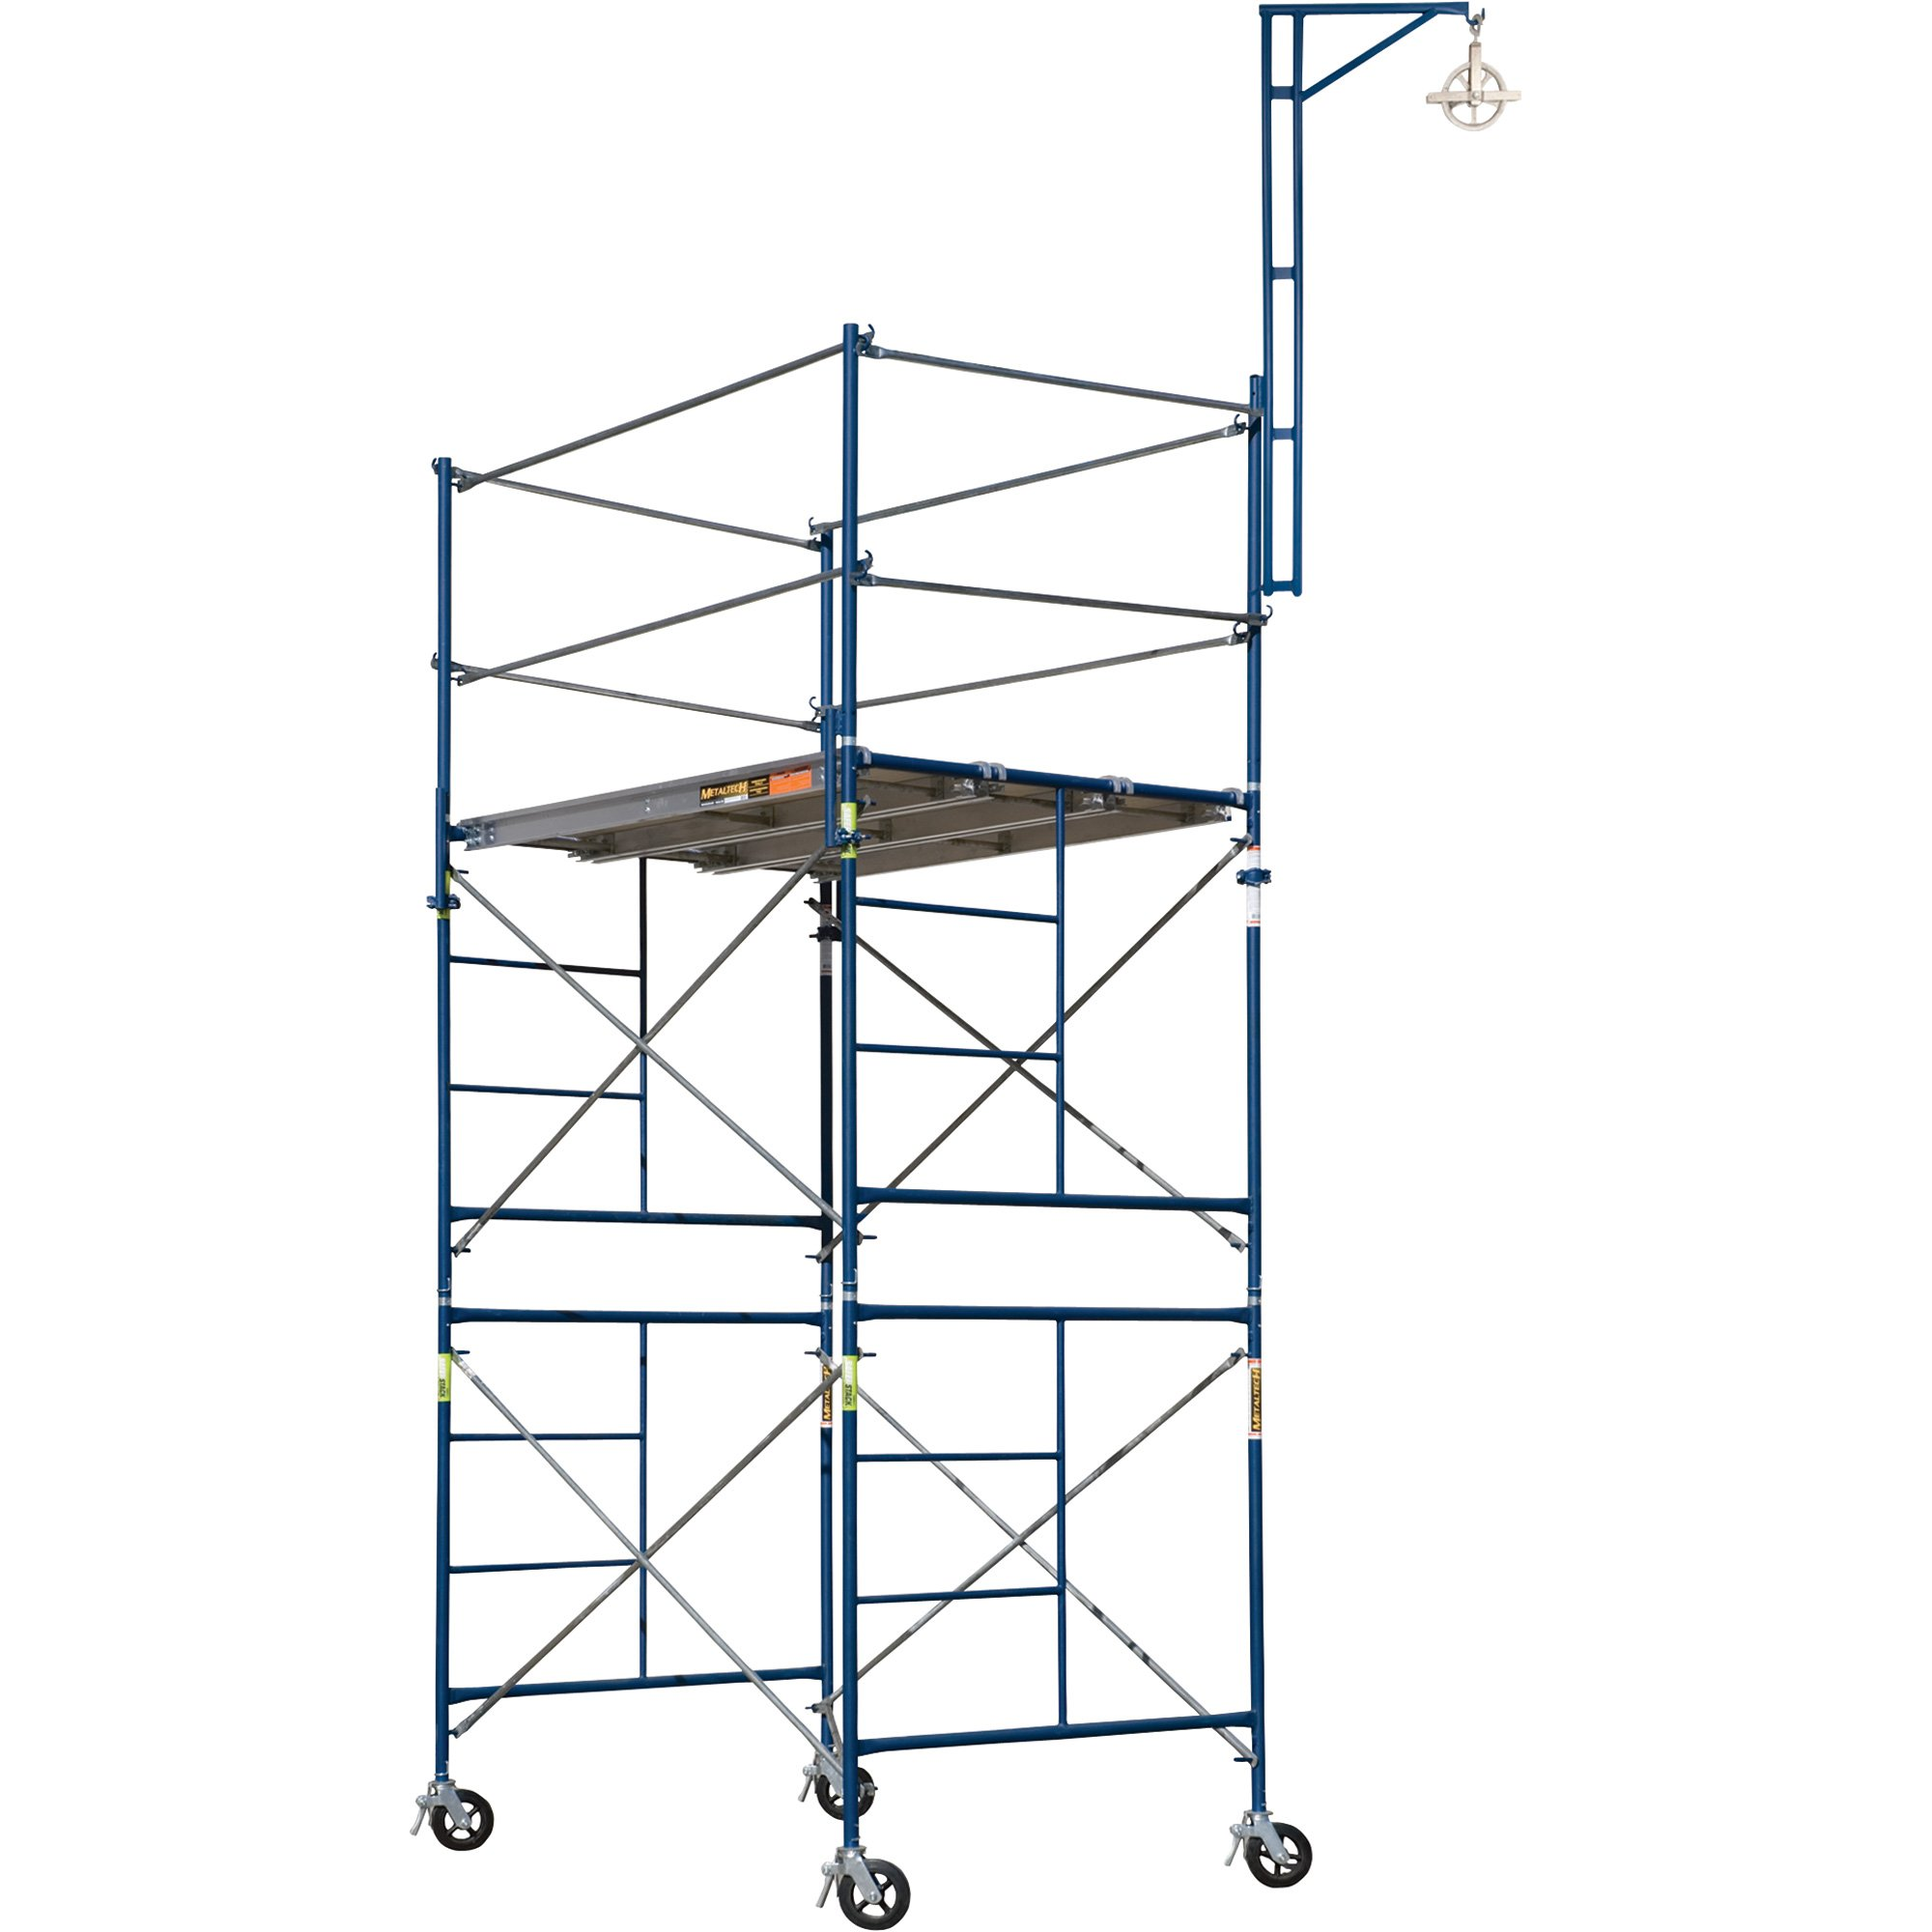 Metaltech SAFERSTACK Complete 2-Section High Tower Scaffolding System, Model Number M-MRT5710 by Metaltech